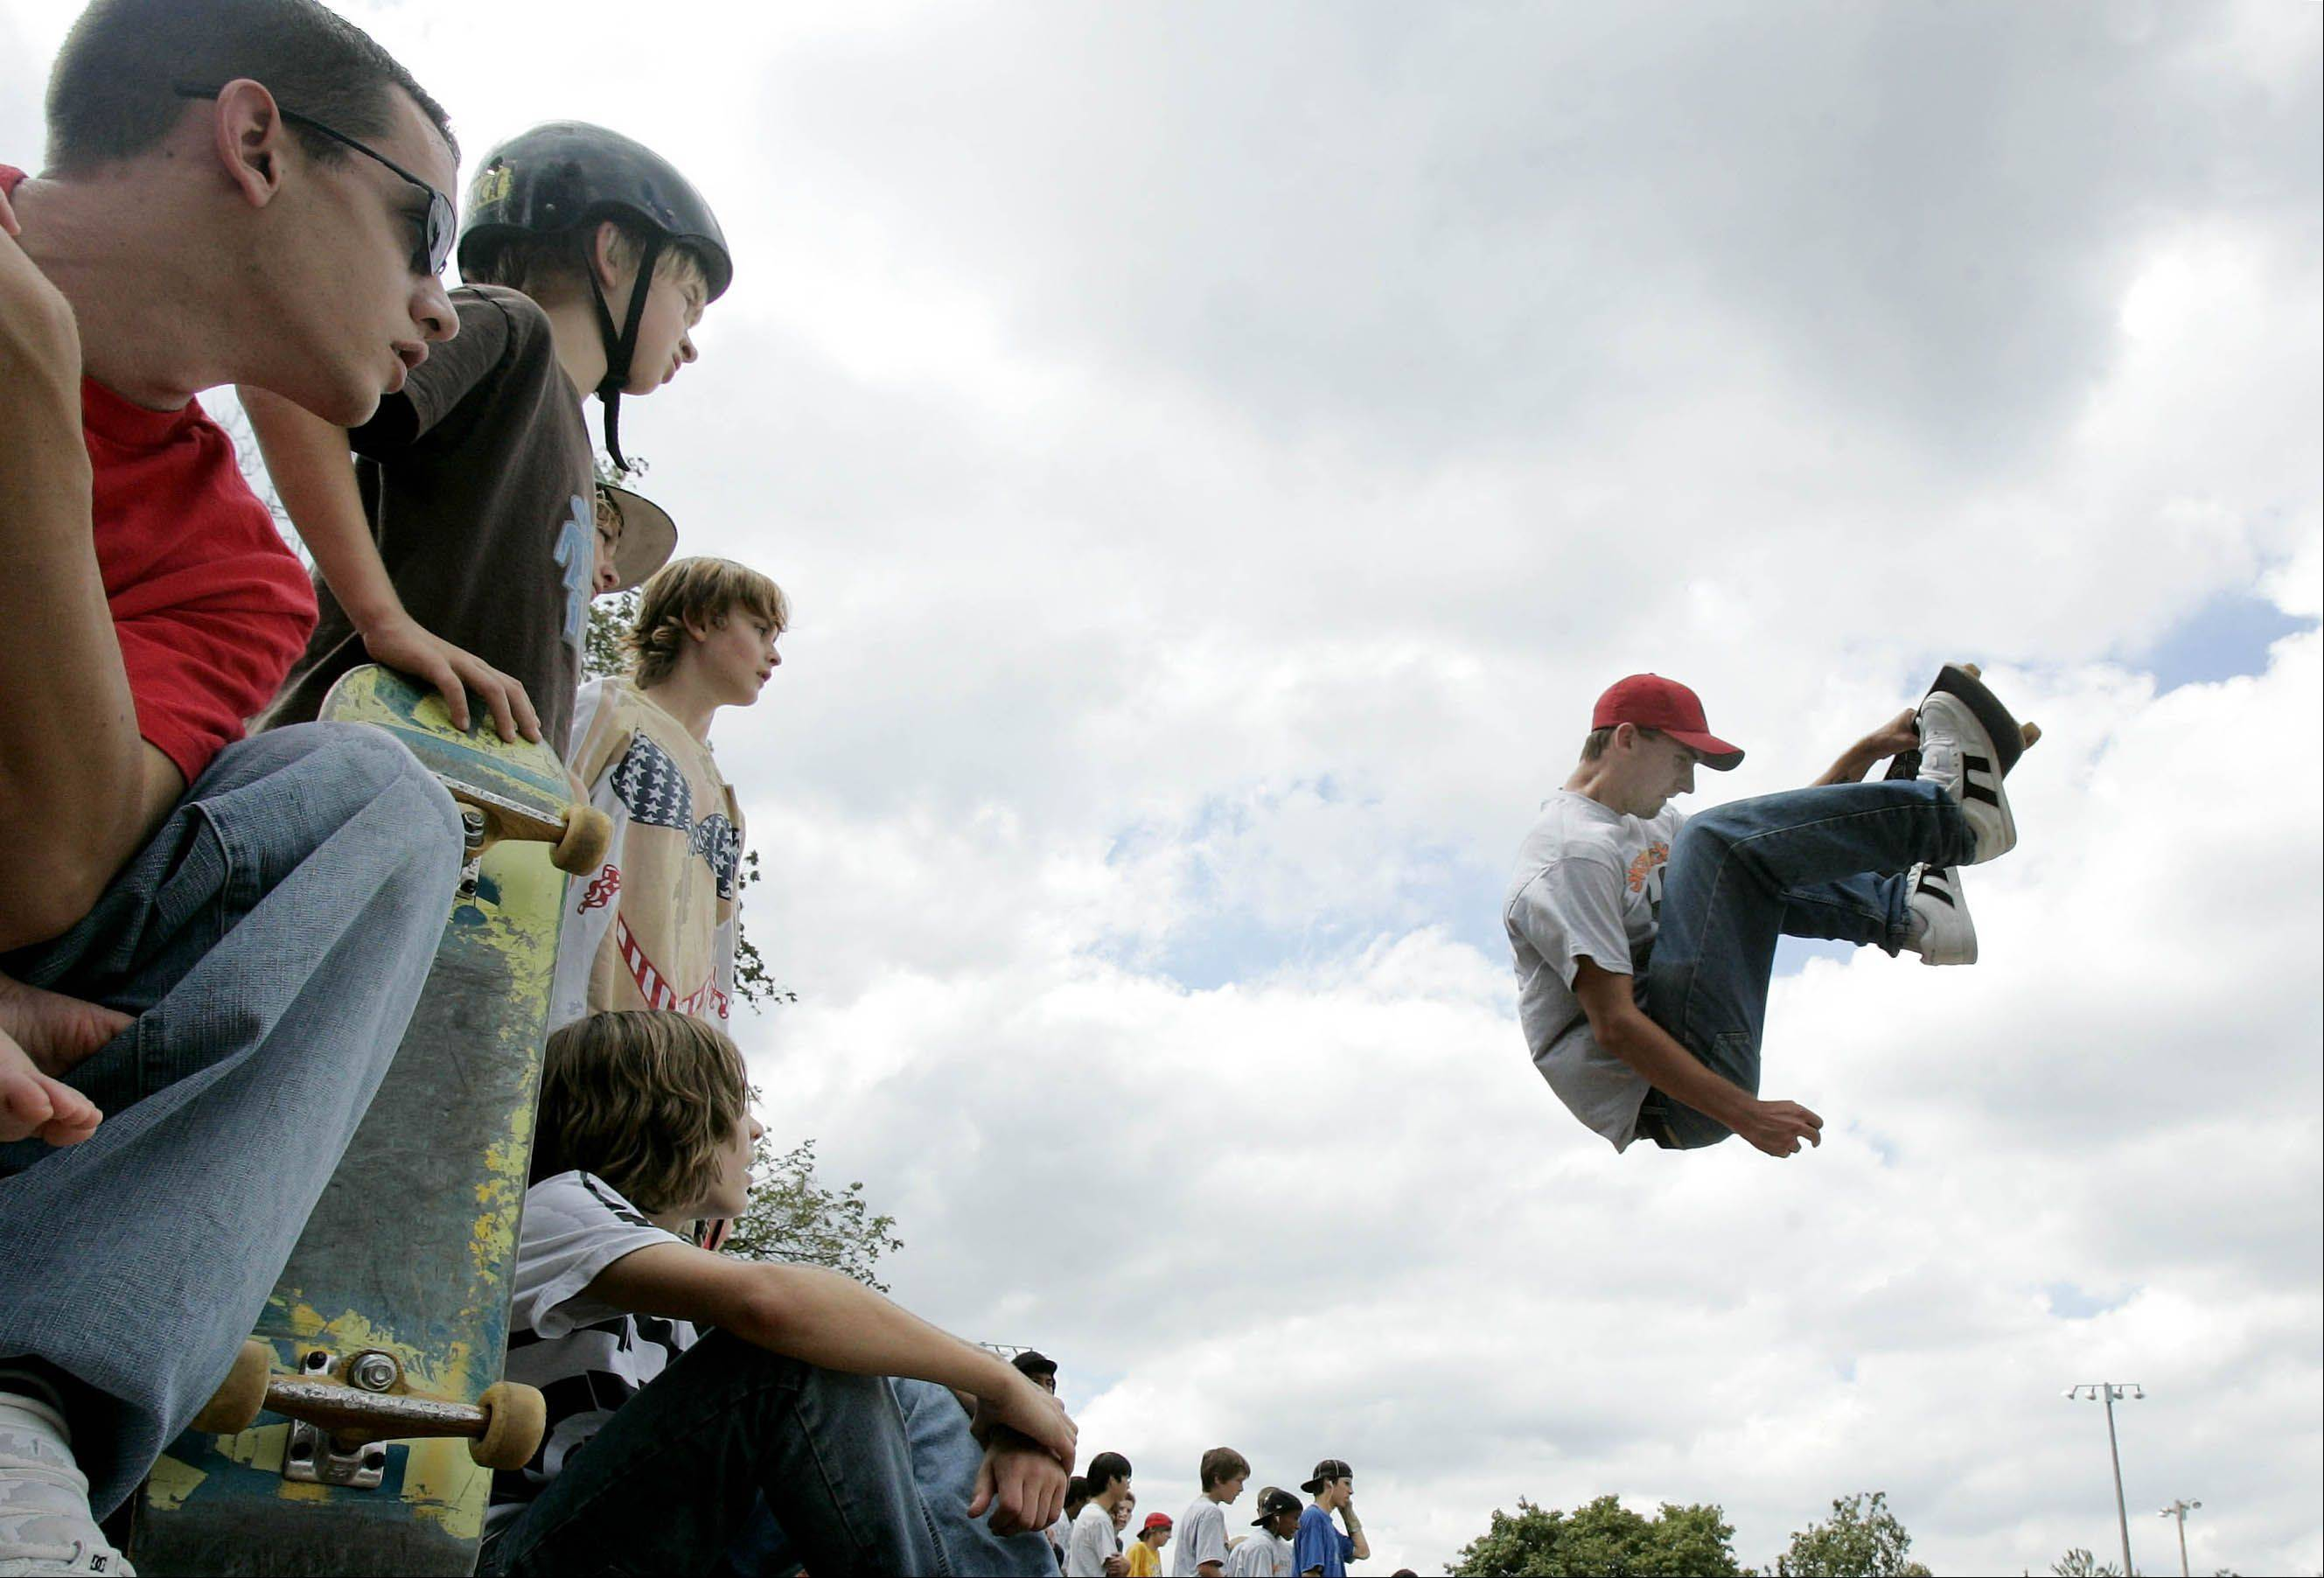 The annual Last Fling Skaters Picnic brings Naperville area skateboarders and police officers together for tricks, prizes and eating contests featuring pie and doughnuts. This year's picnic is scheduled for 11 a.m. to 2 p.m. Saturday, Aug. 31, at the Centennial Beach Skate Park, 500 W. Jackson Ave., Naperville.